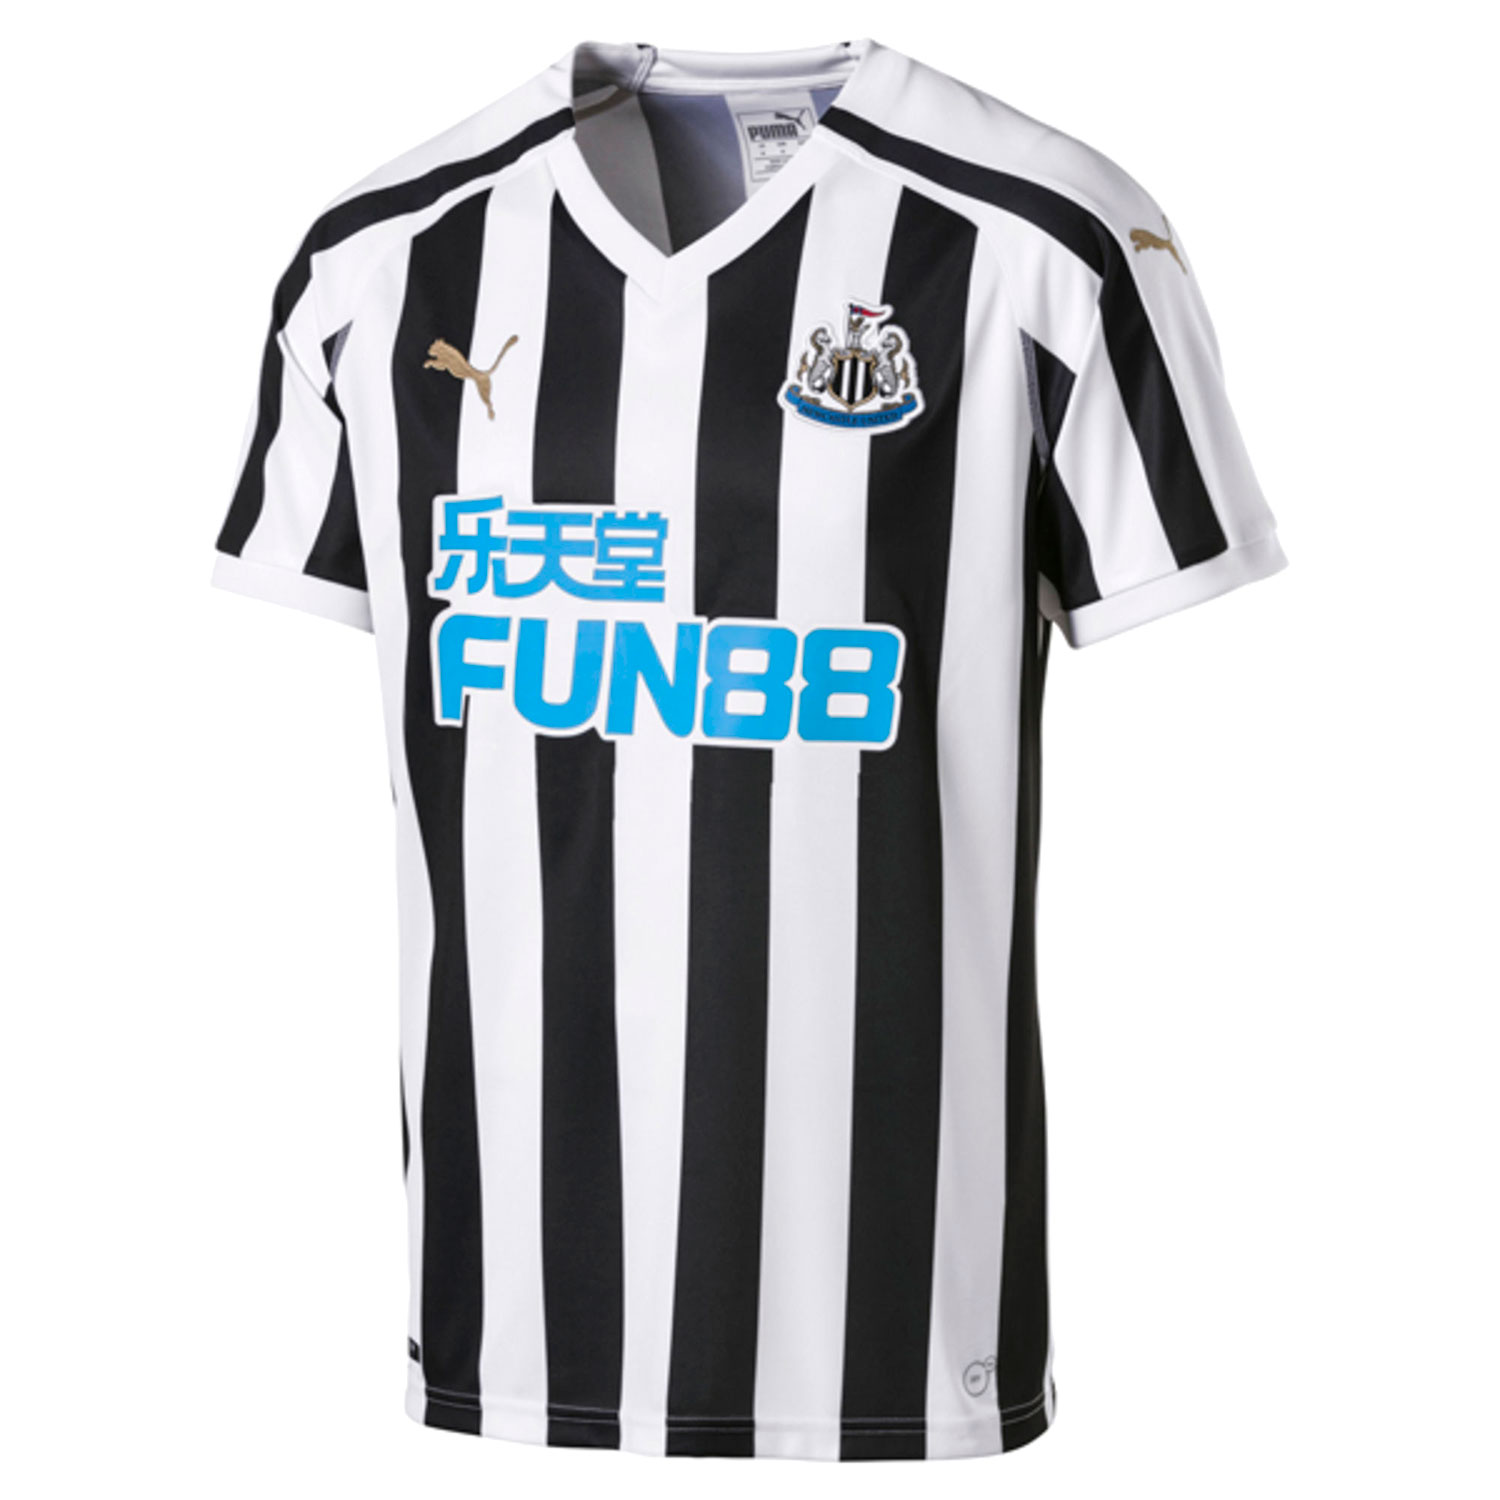 Newcastle Utd Home Shirt 2018 2019